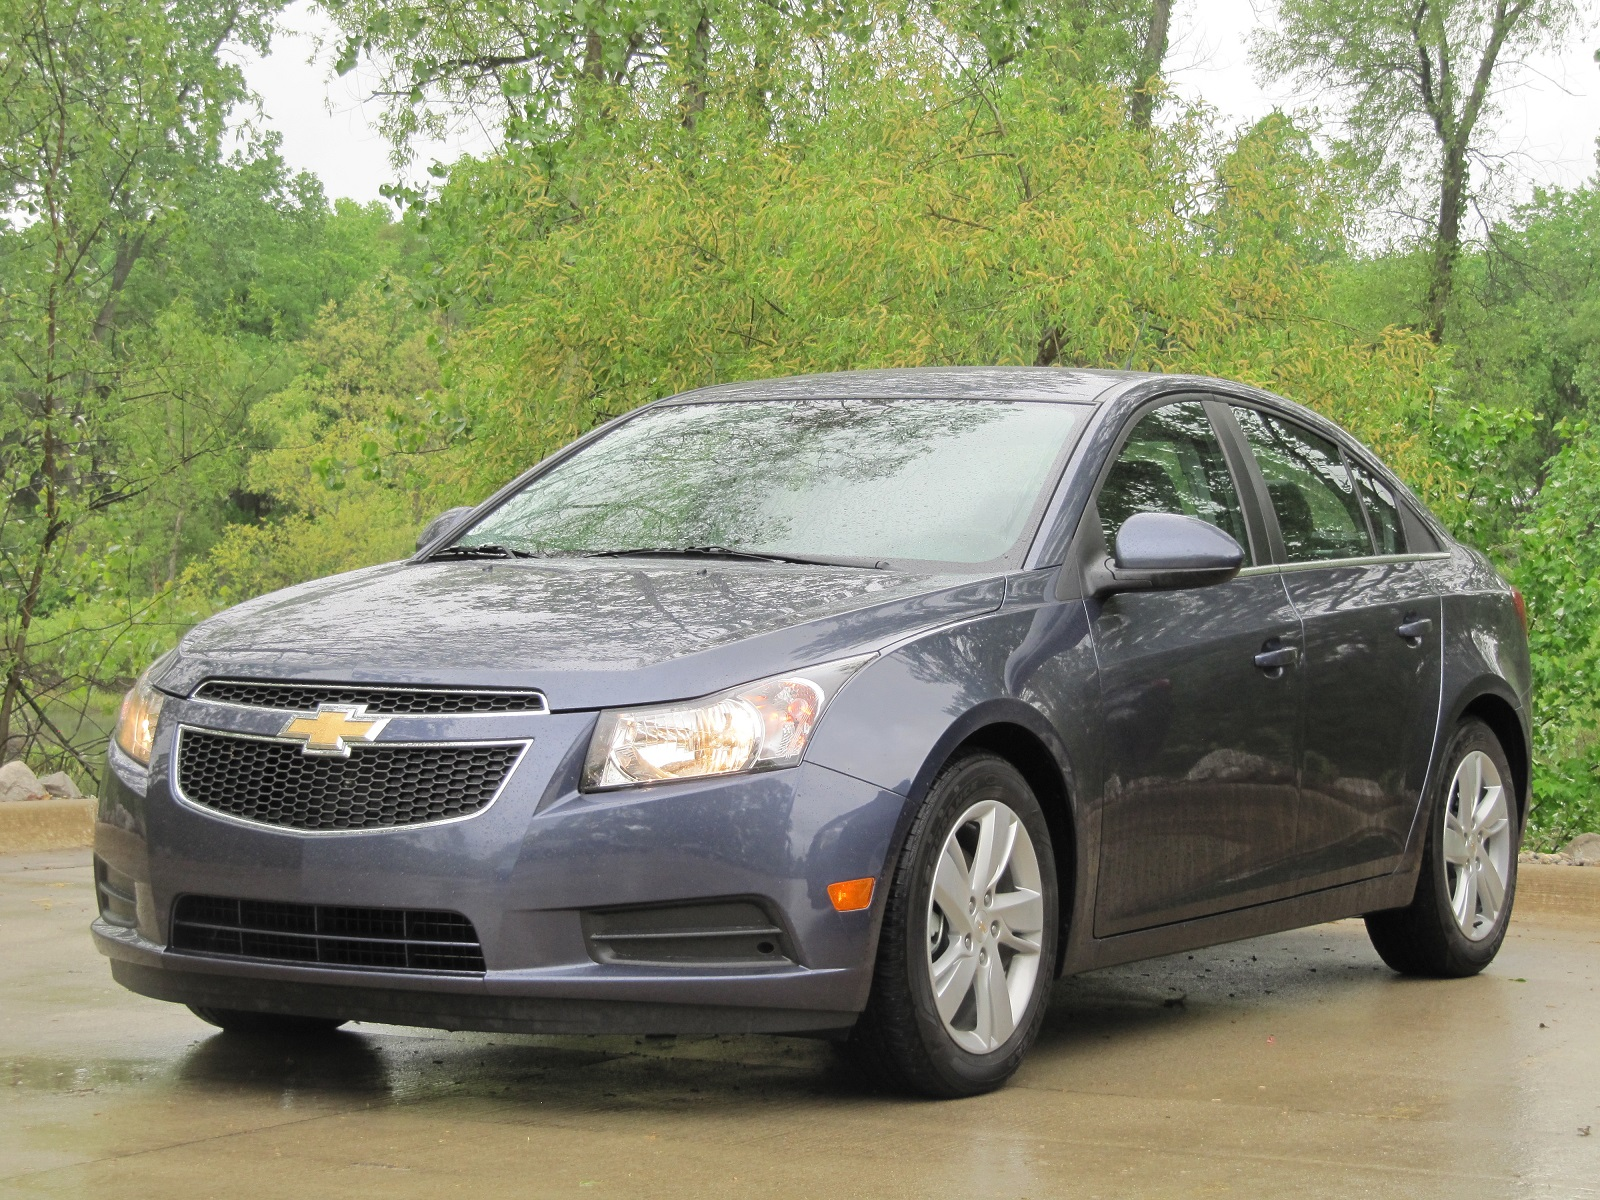 2014 chevrolet cruze sel test drive in hell michigan h